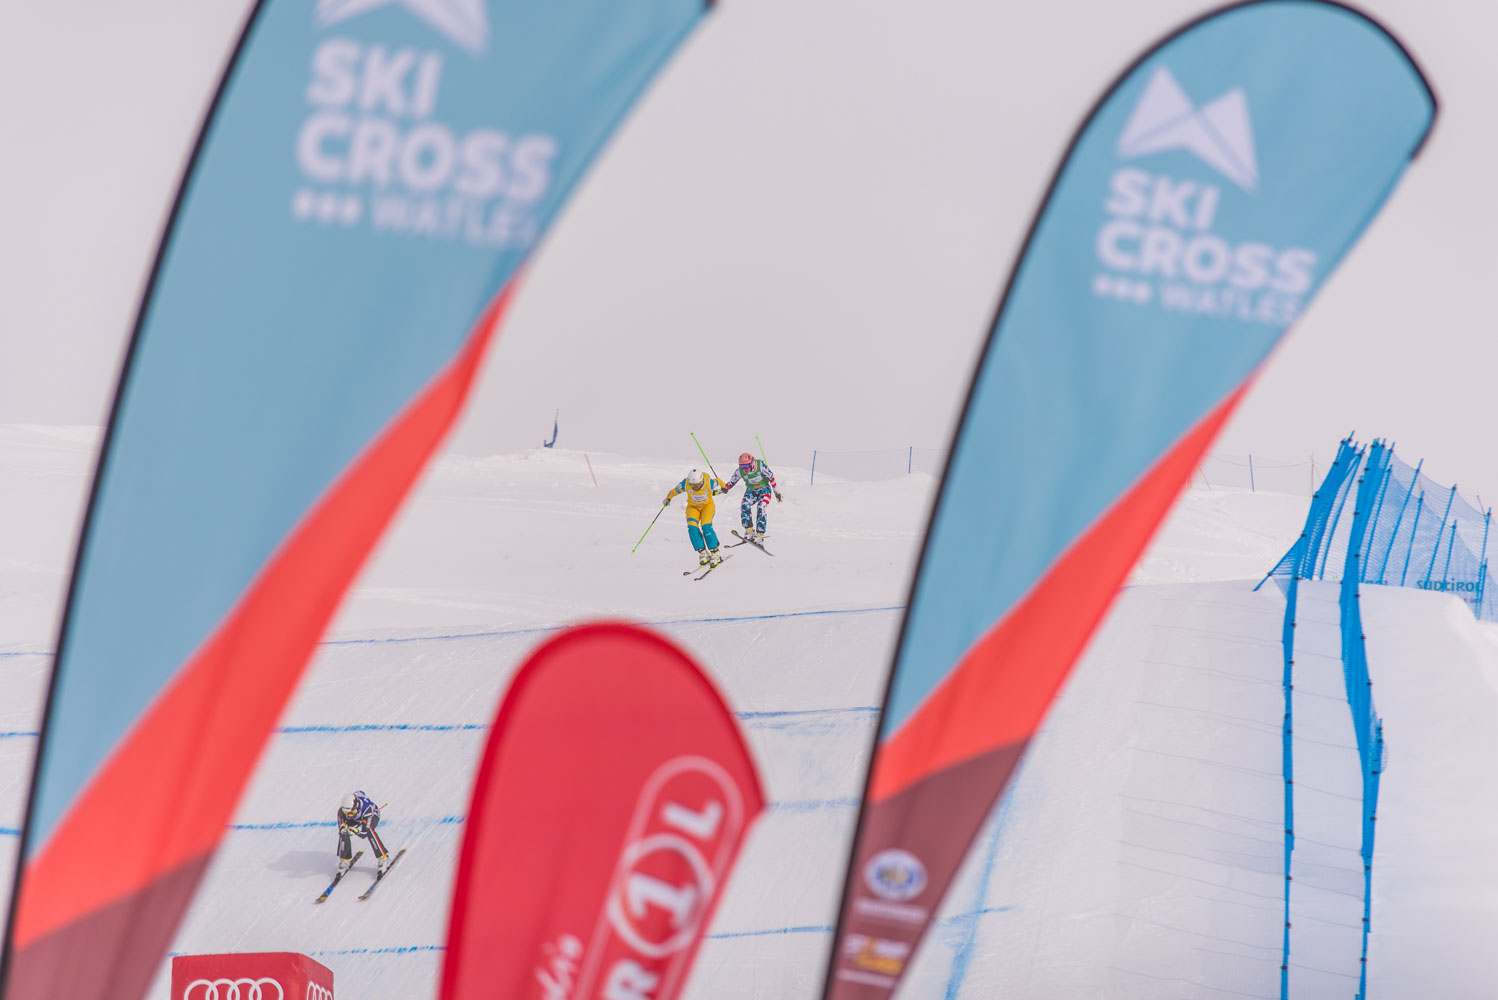 Ski Cross Watles